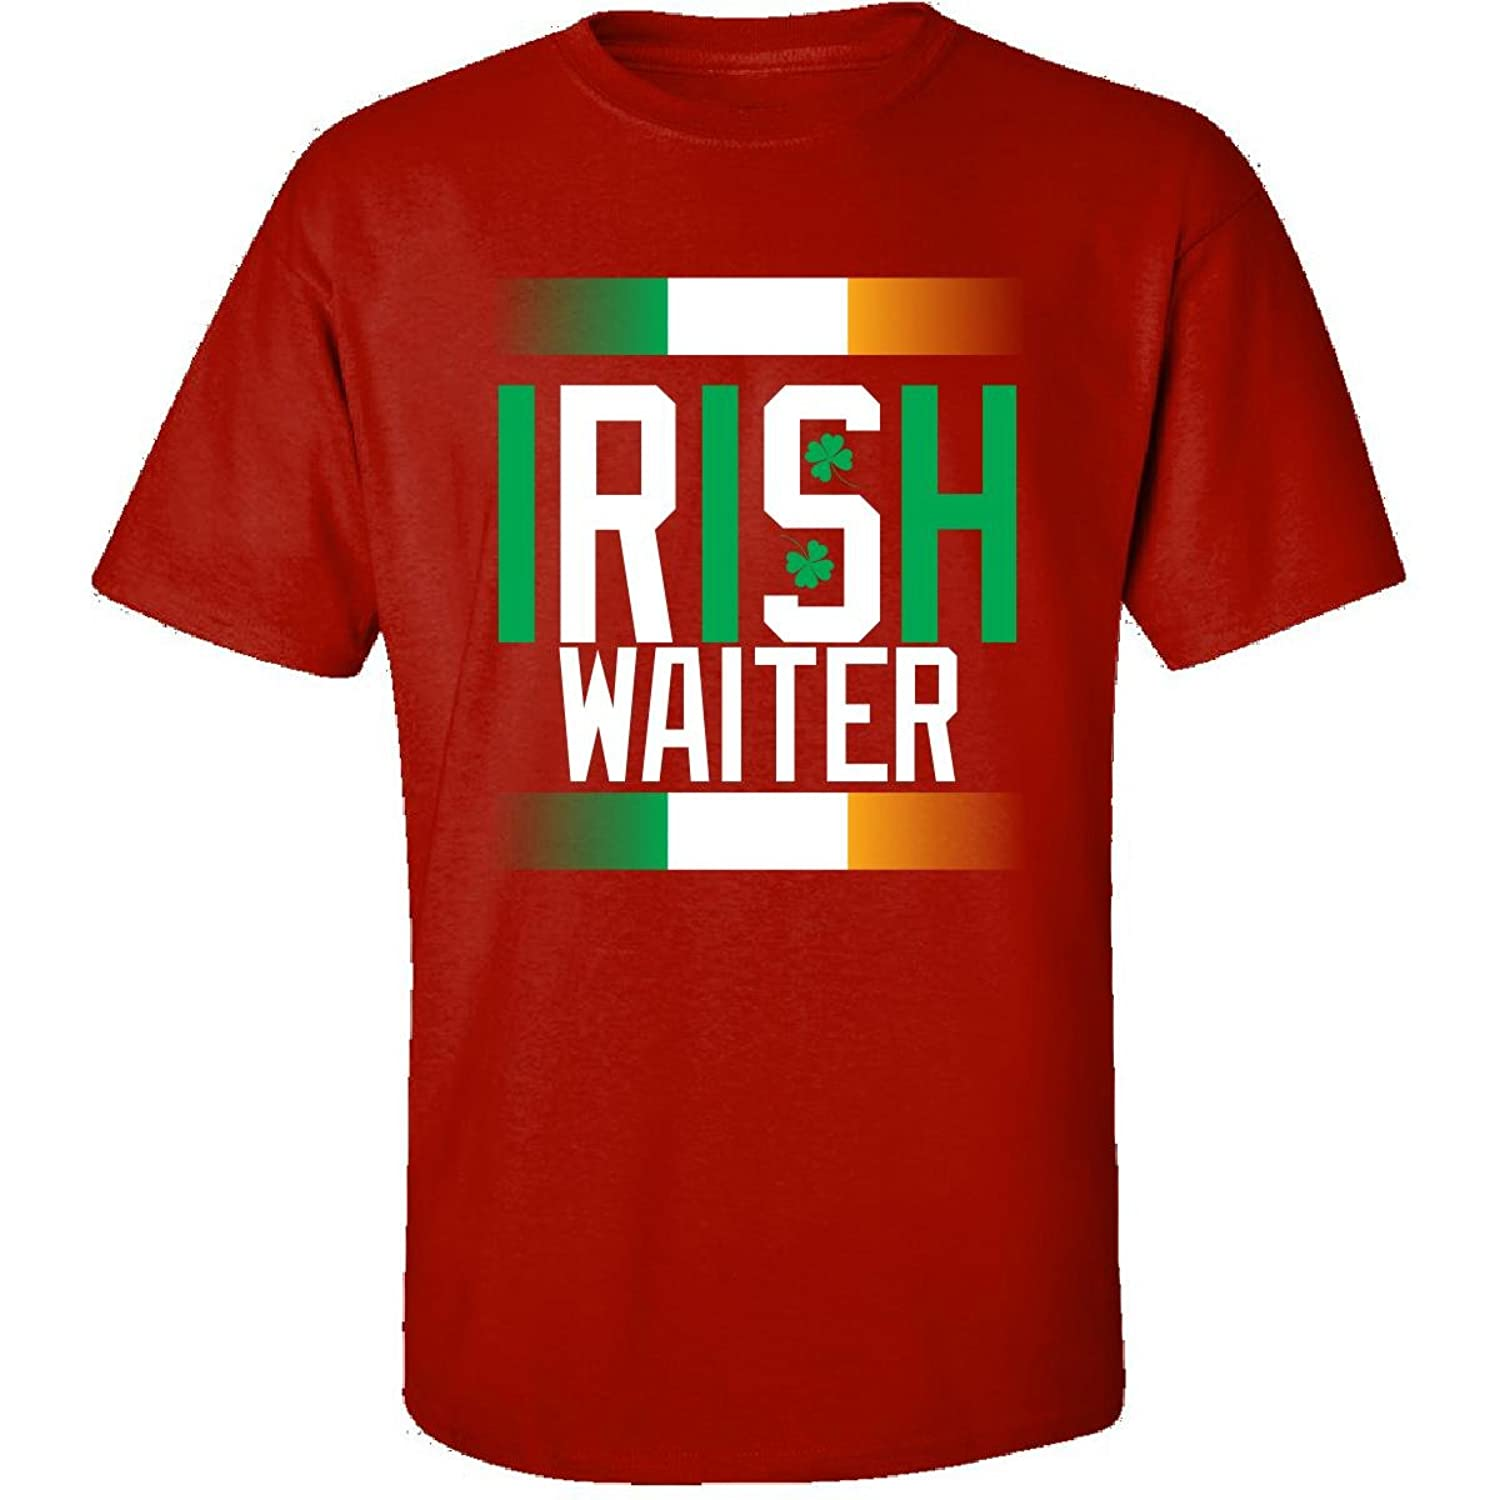 Irish Waiter Beautiful St Patrick Day Gift For Waiter - Adult Shirt